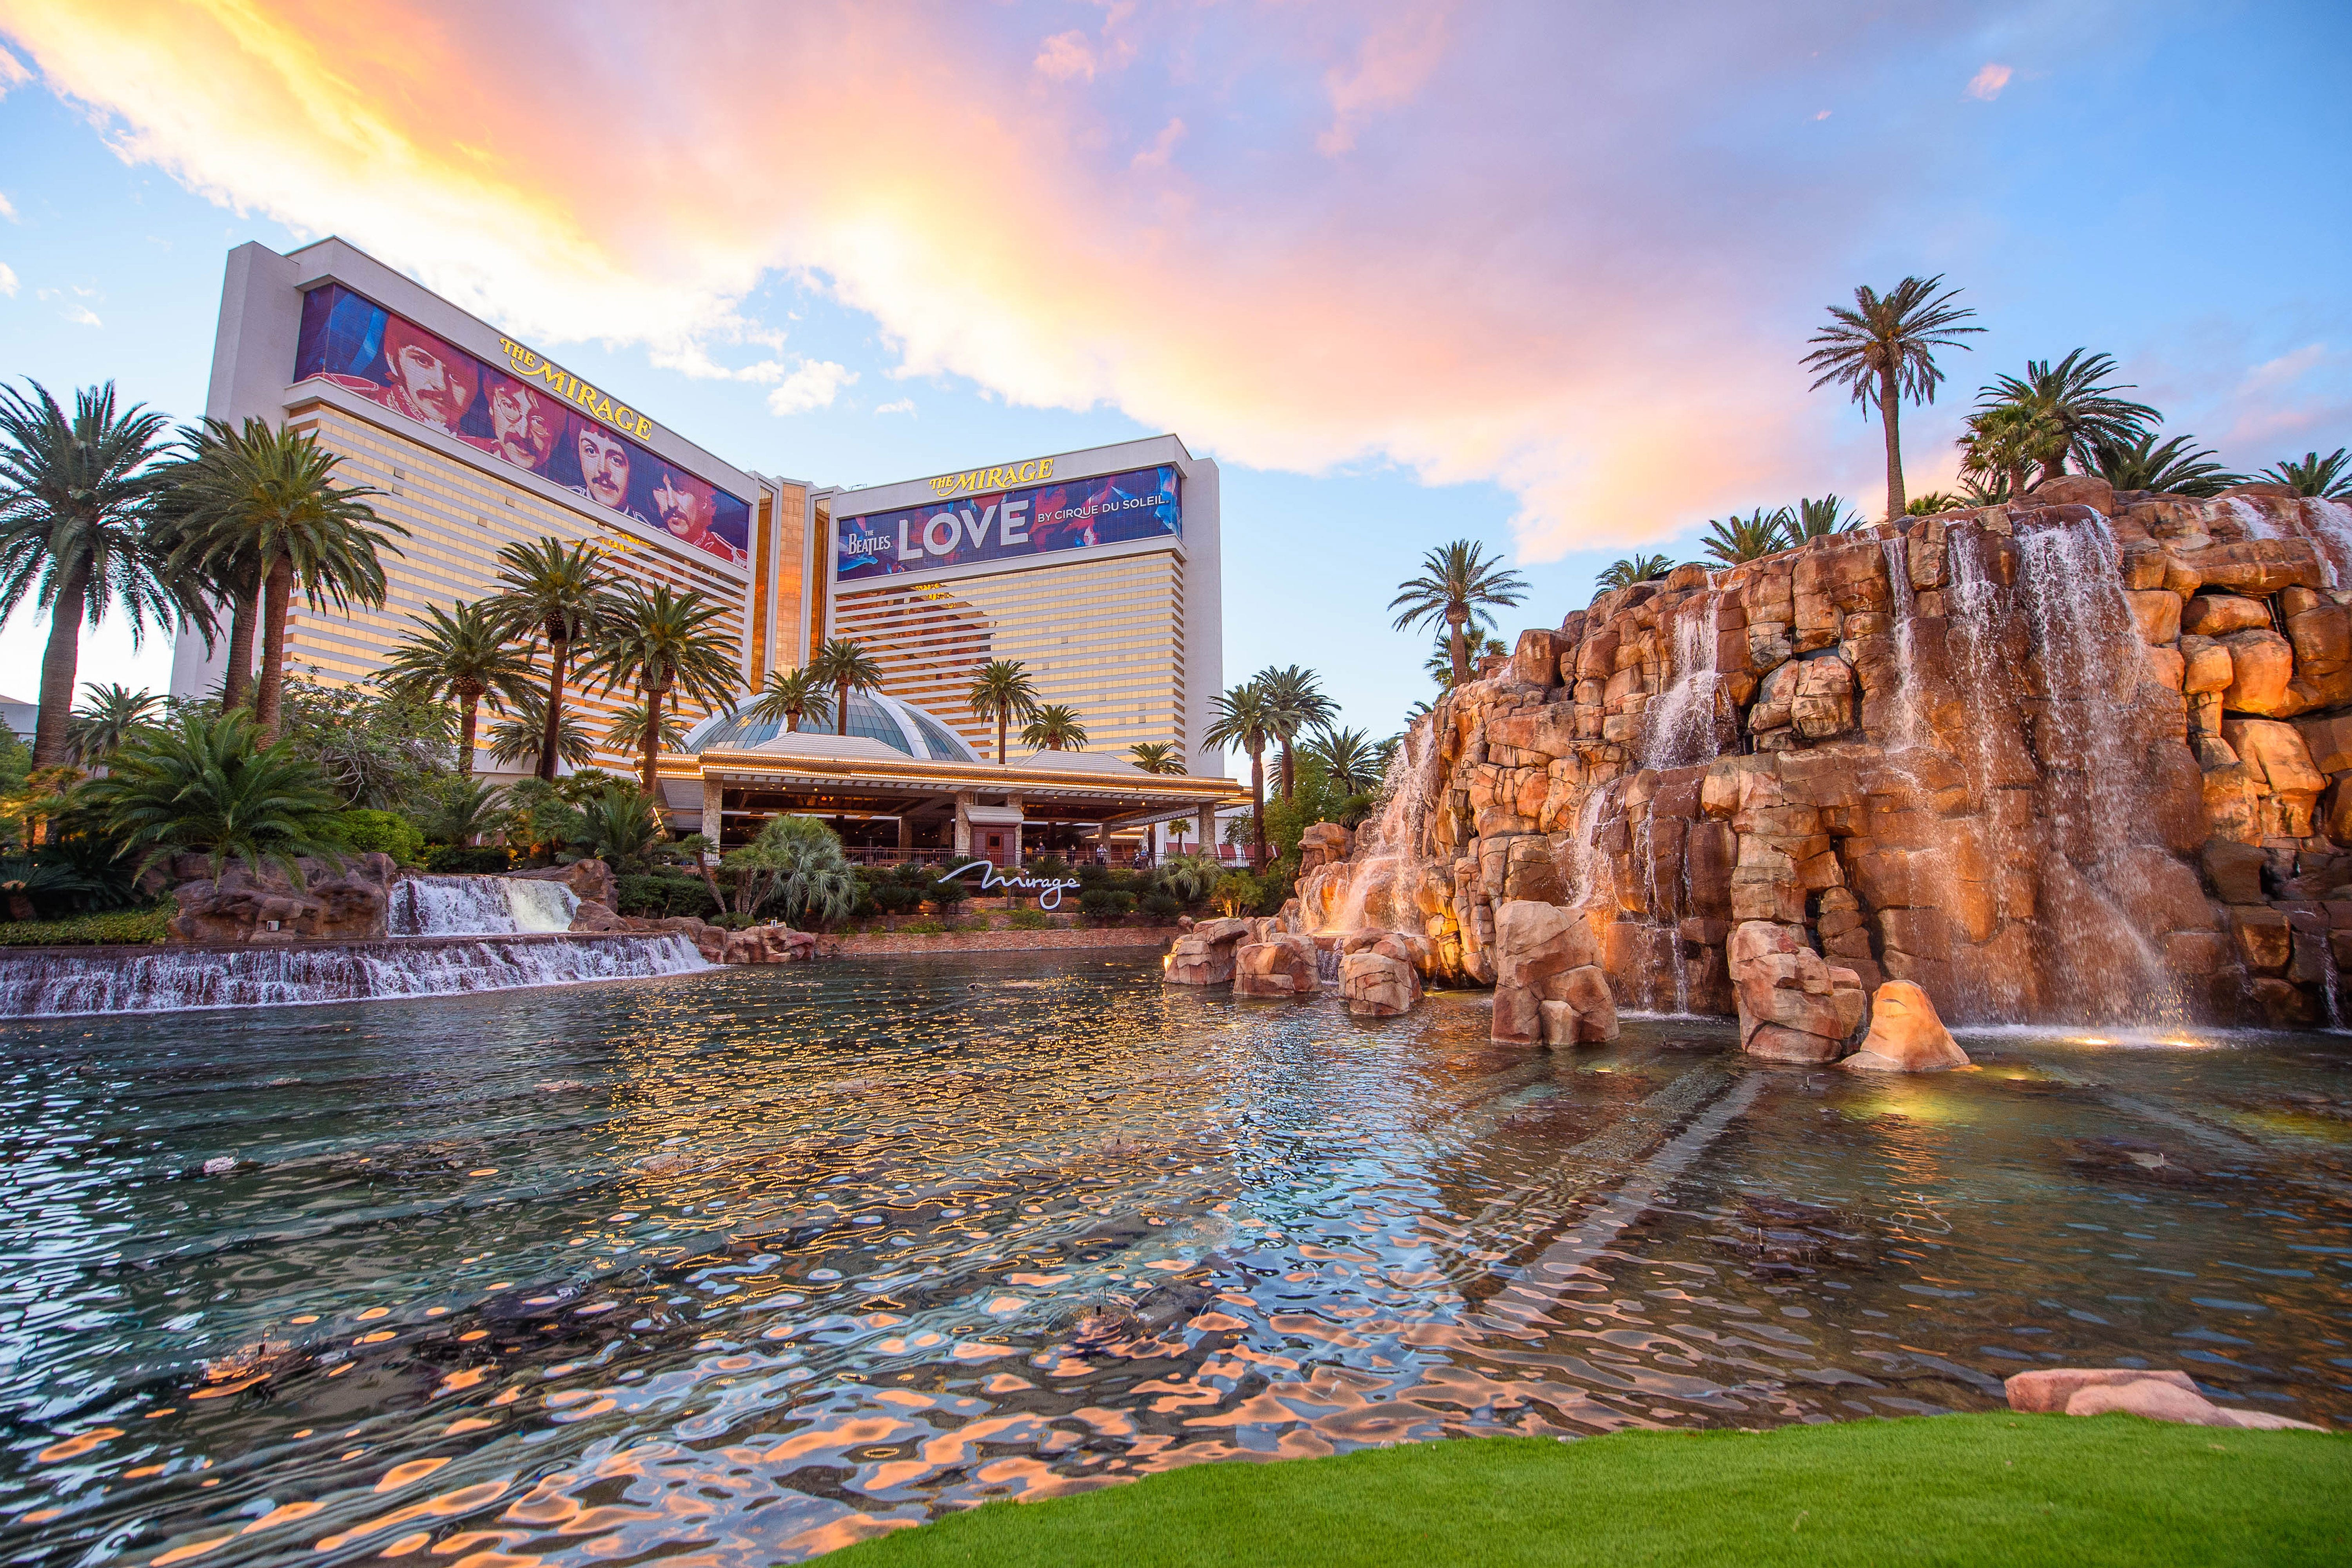 Las Vegas hotel casino reopenings: MGM Resorts to reopen The Mirage